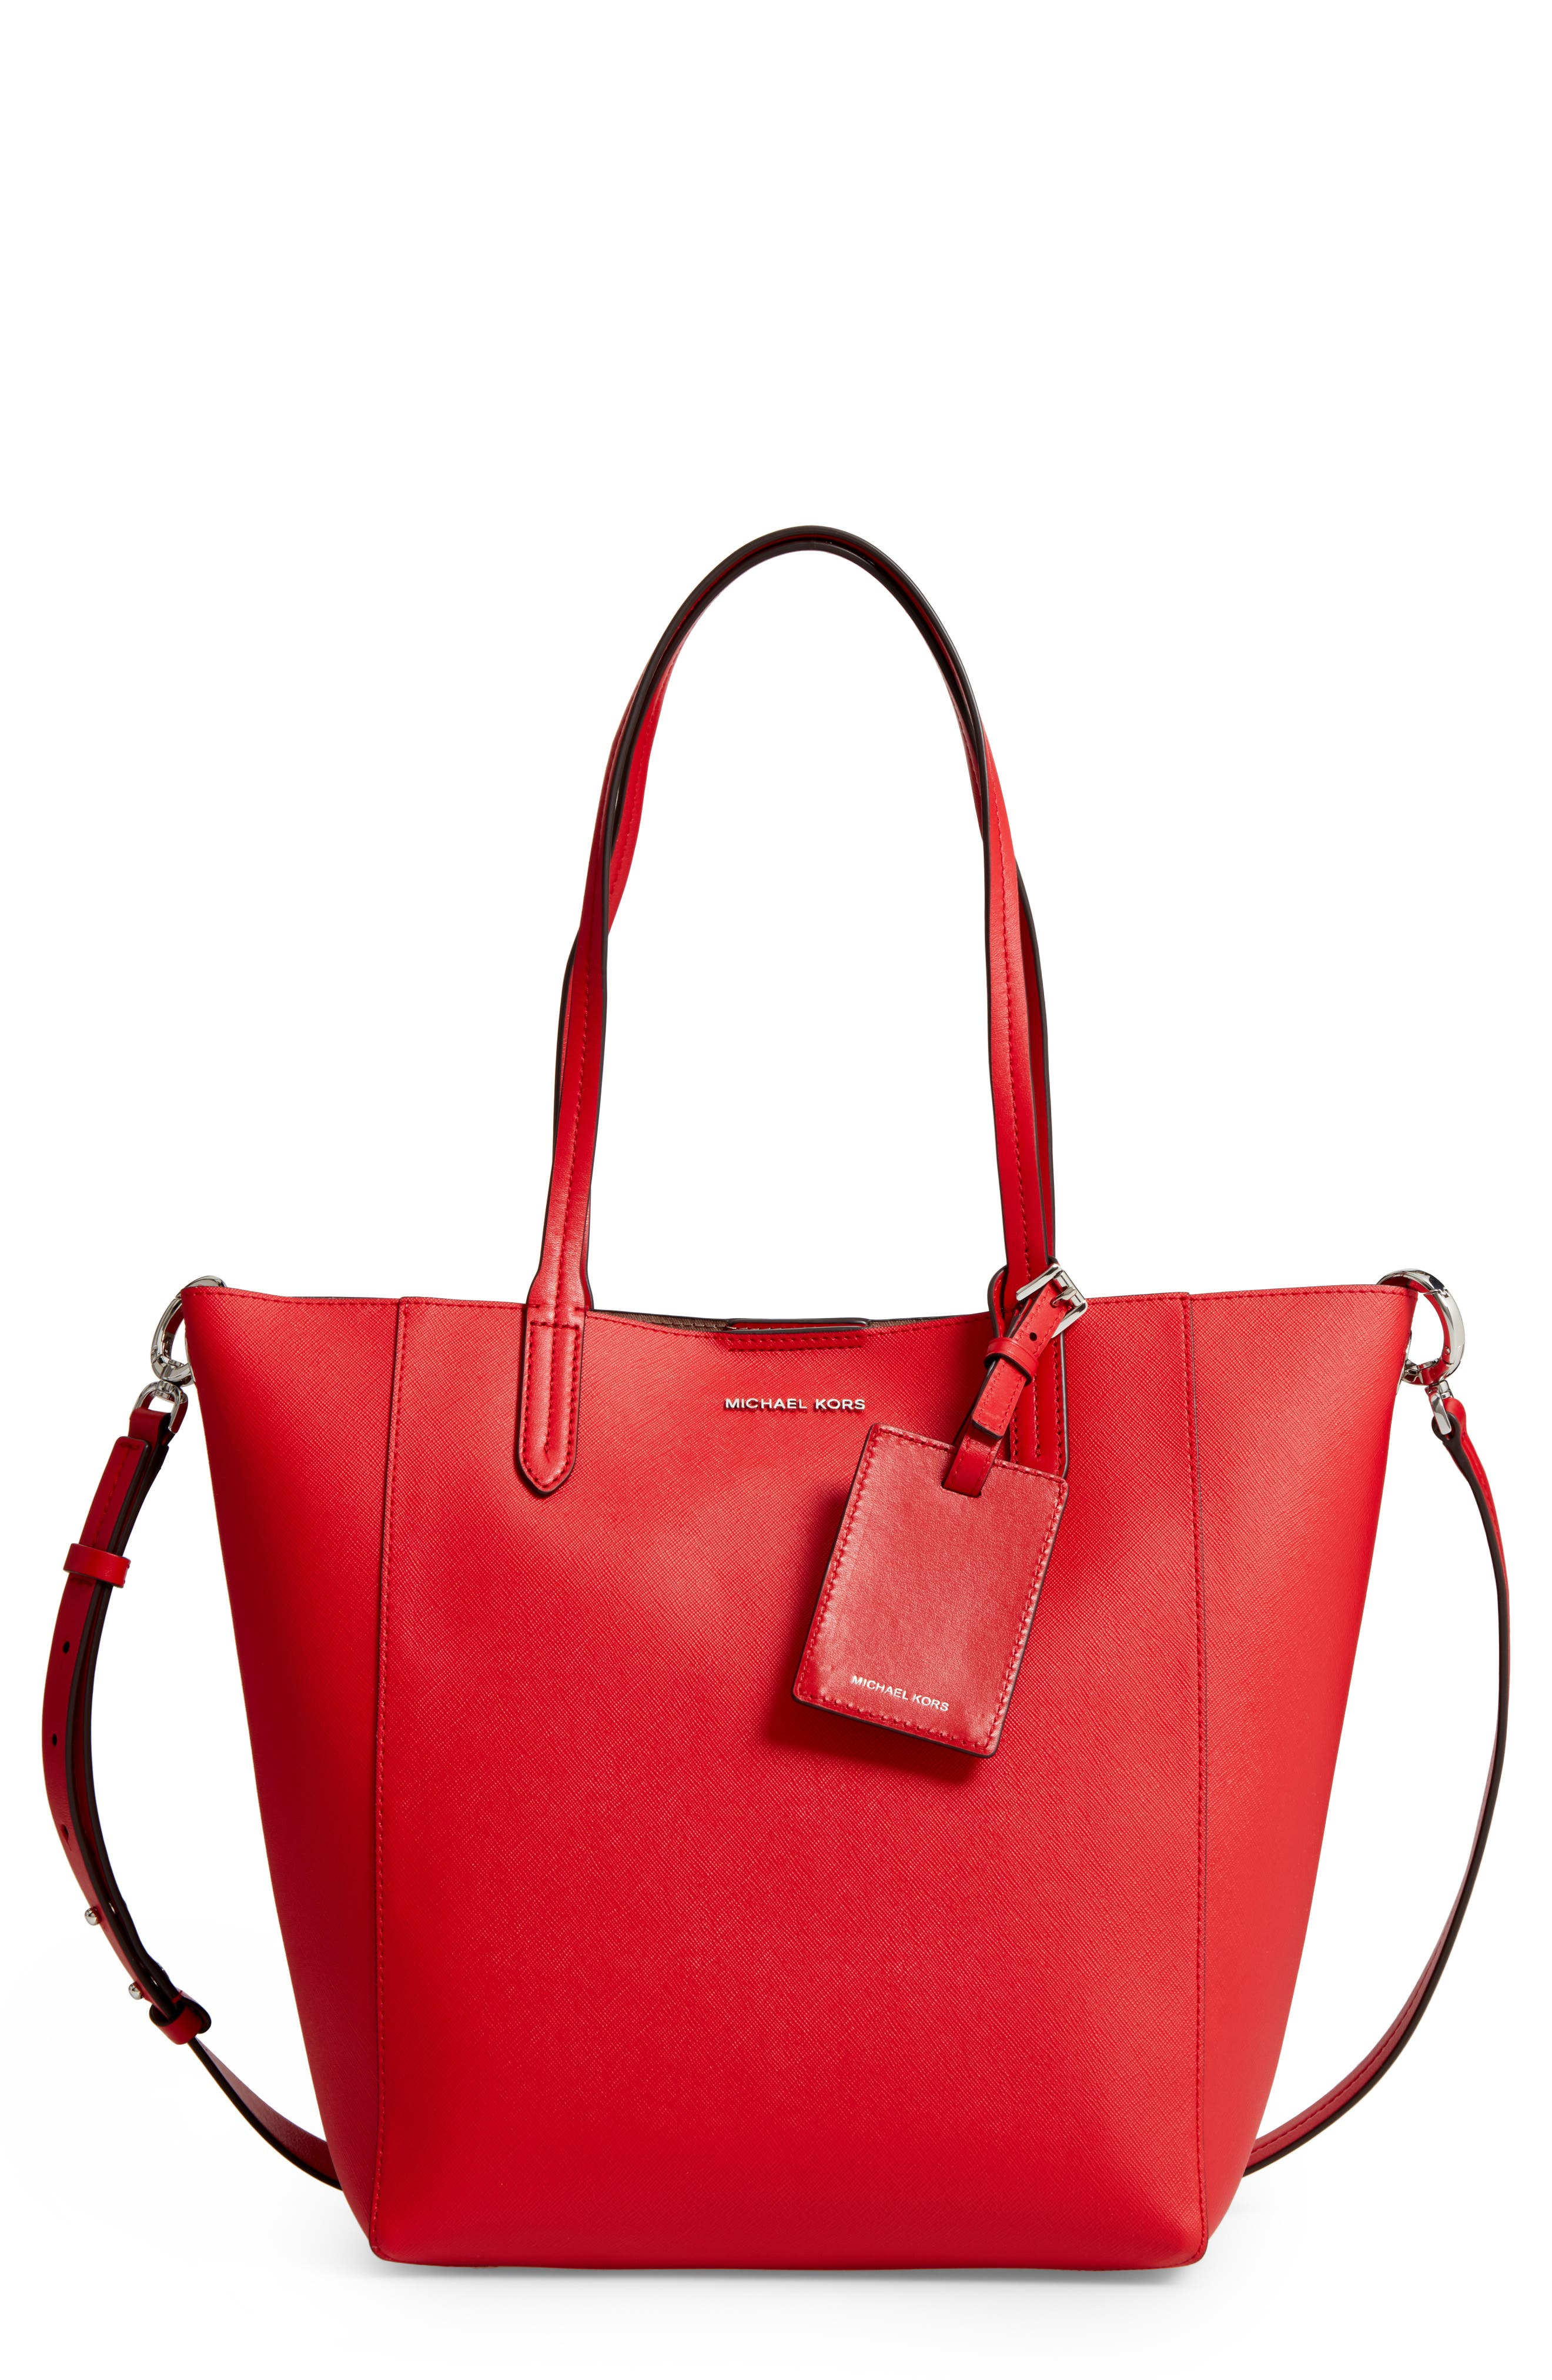 Penny Large Saffiano Convertible Leather Tote,                             Main thumbnail 1, color,                             Bright Red